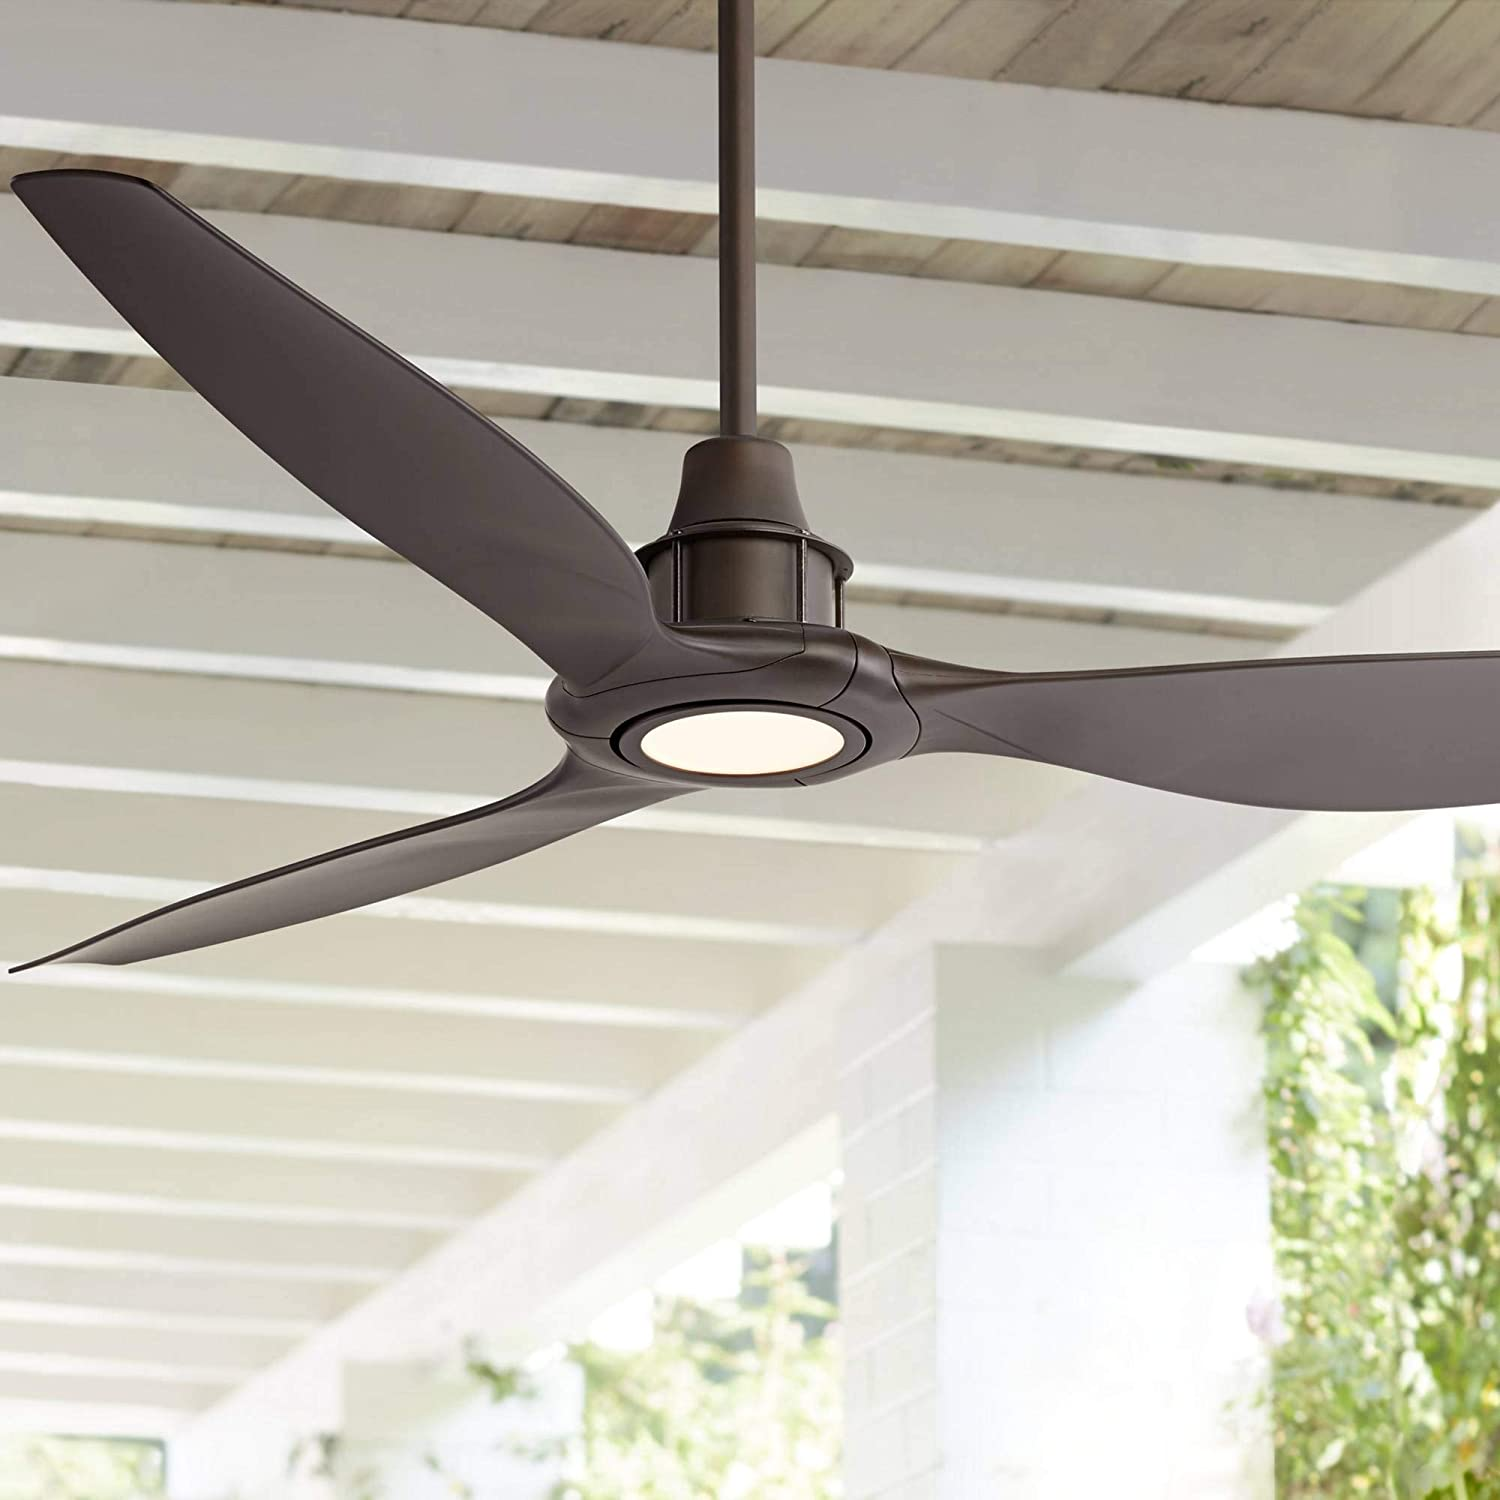 58 Interceptor Modern Outdoor Ceiling Fan With Light Led Dimmable Remote Control Oil Rubbed Bronze Damp Rated For Patio Porch Casa Vieja Amazon Com